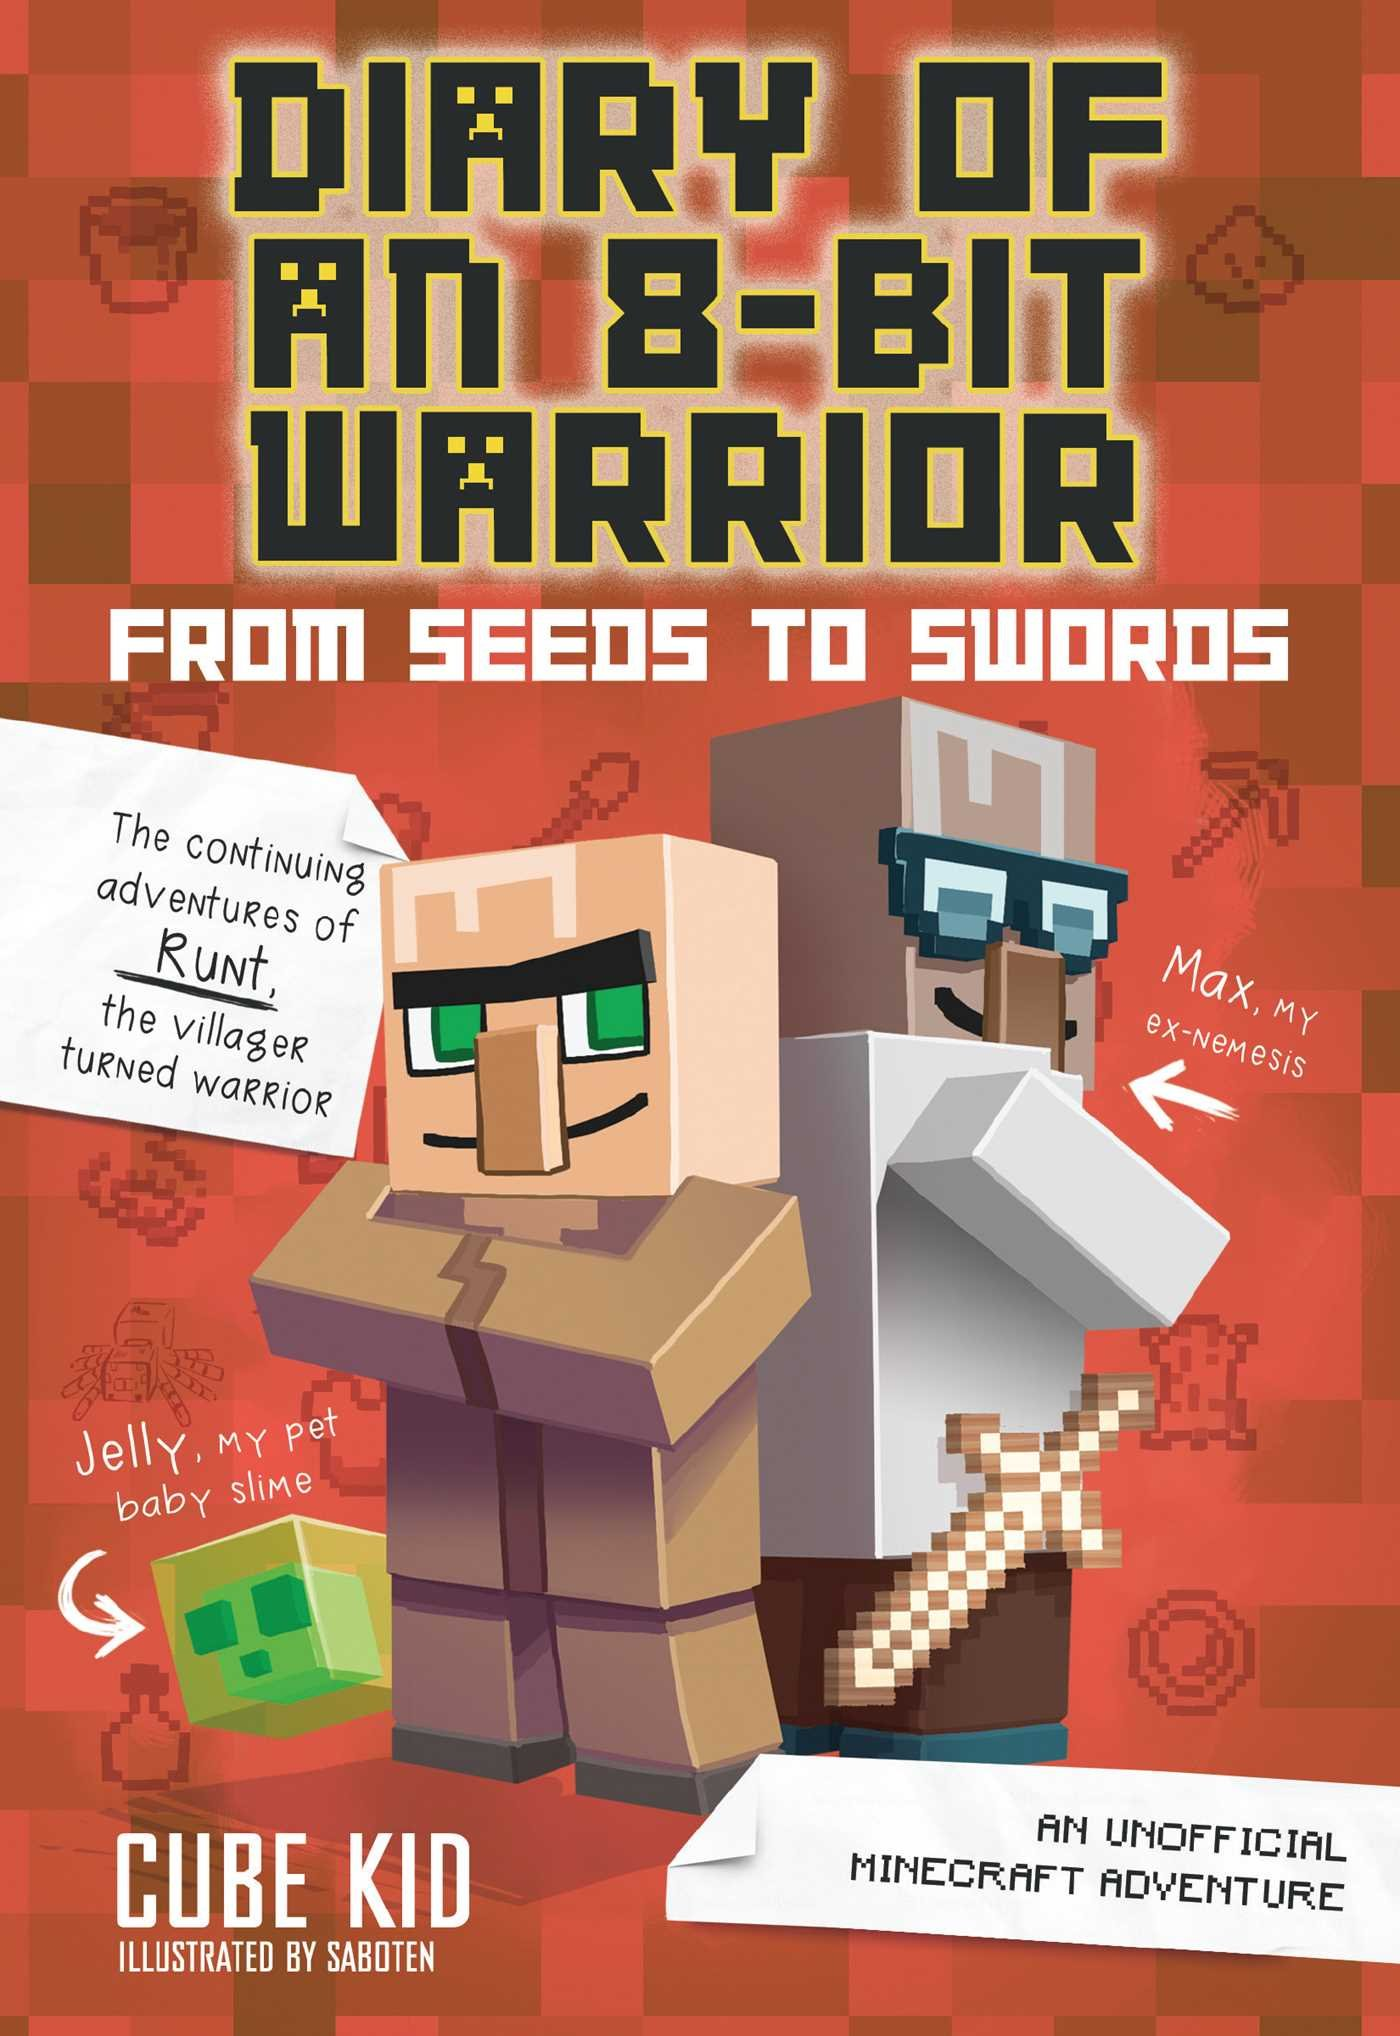 Diary 8 Bit Warrior Unofficial Minecraft product image